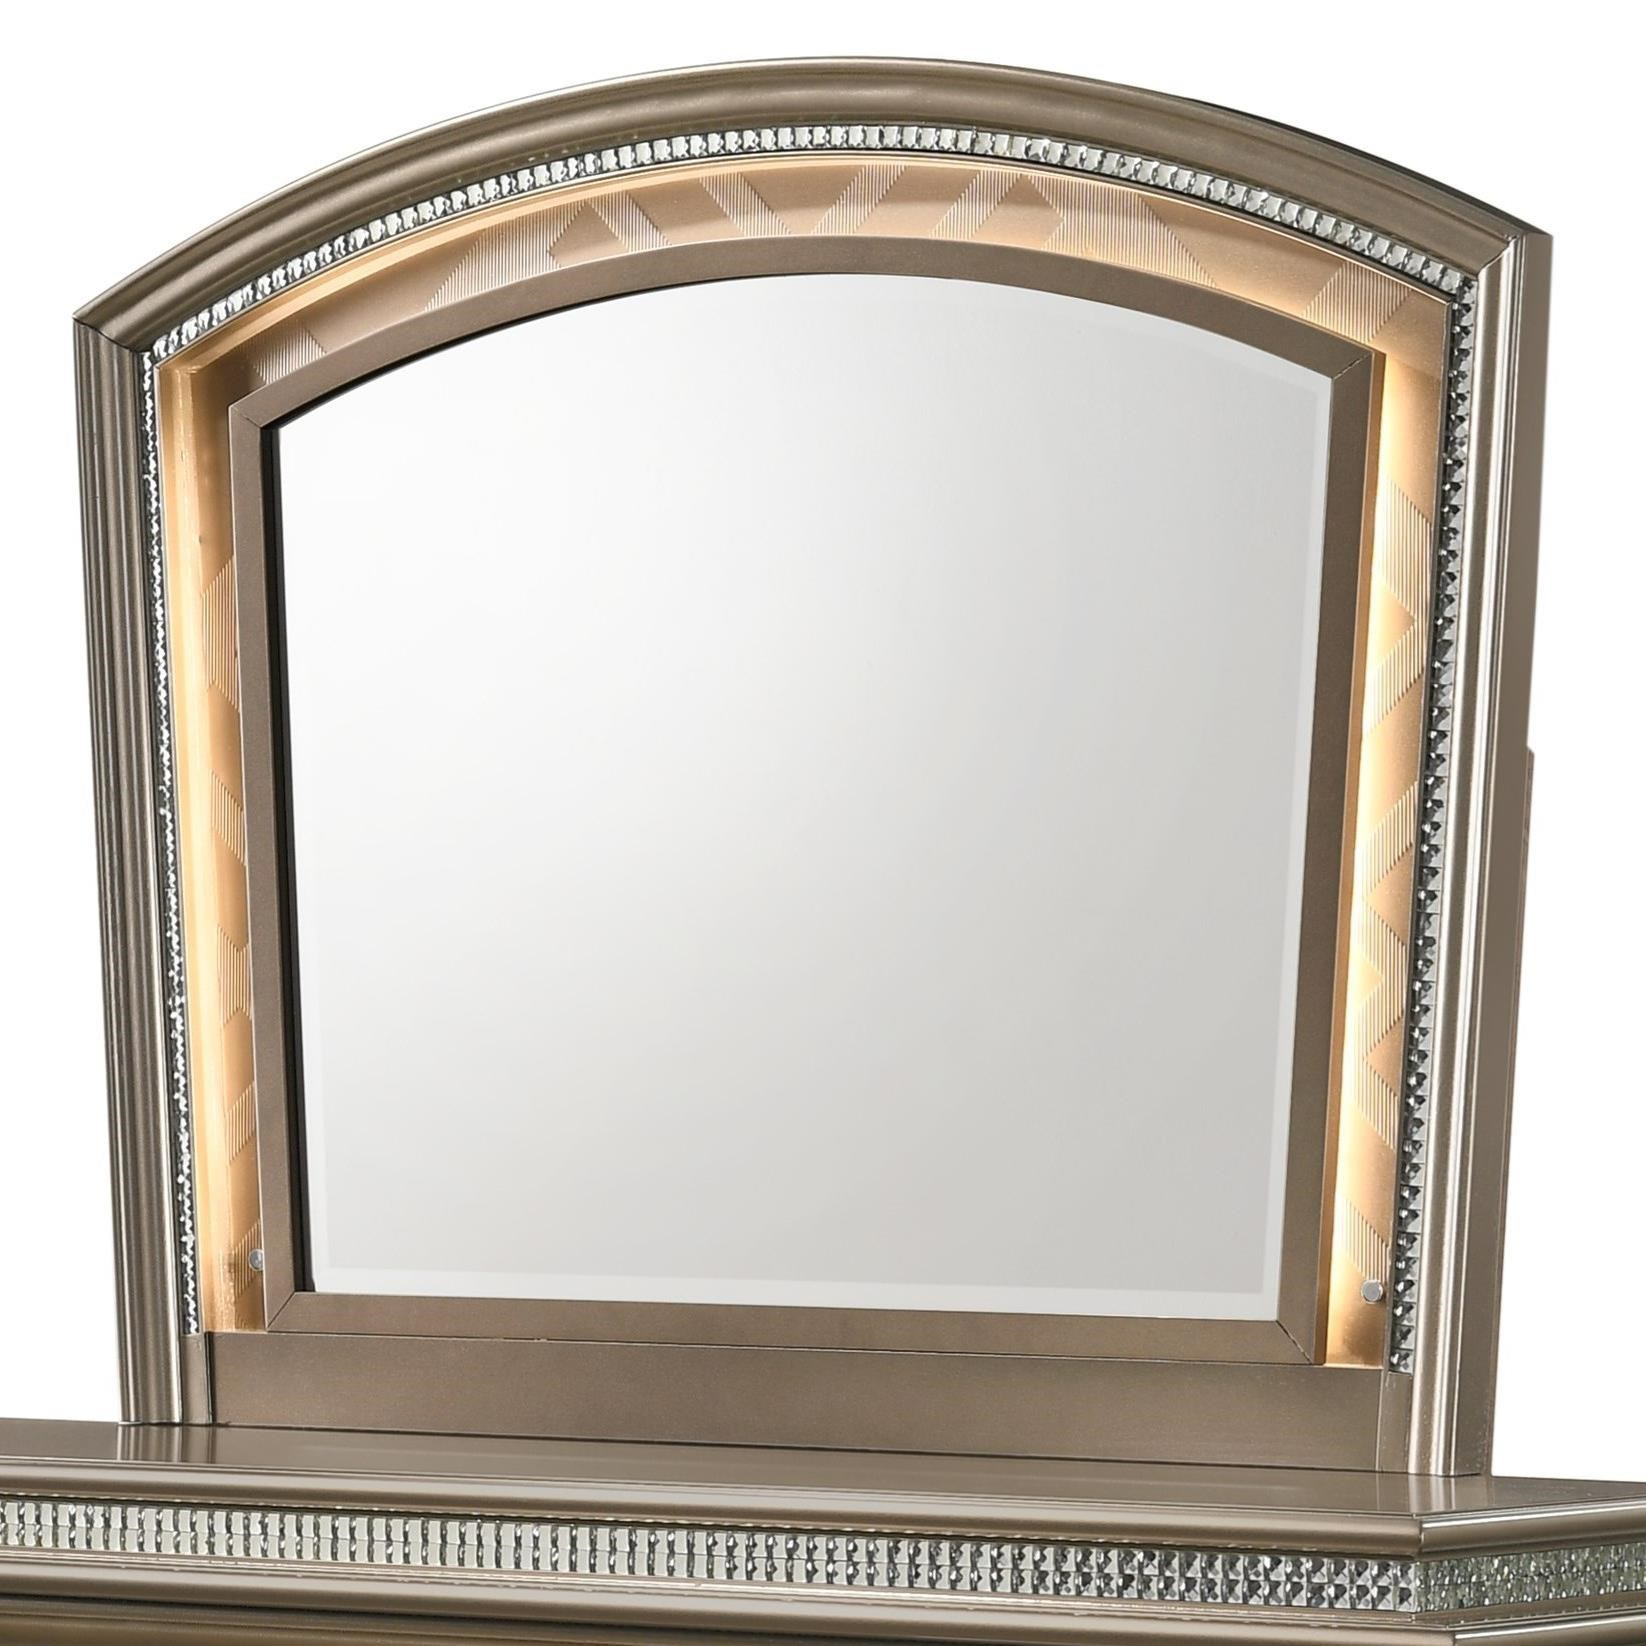 Cristal Dresser Mirror by Crown Mark at Northeast Factory Direct